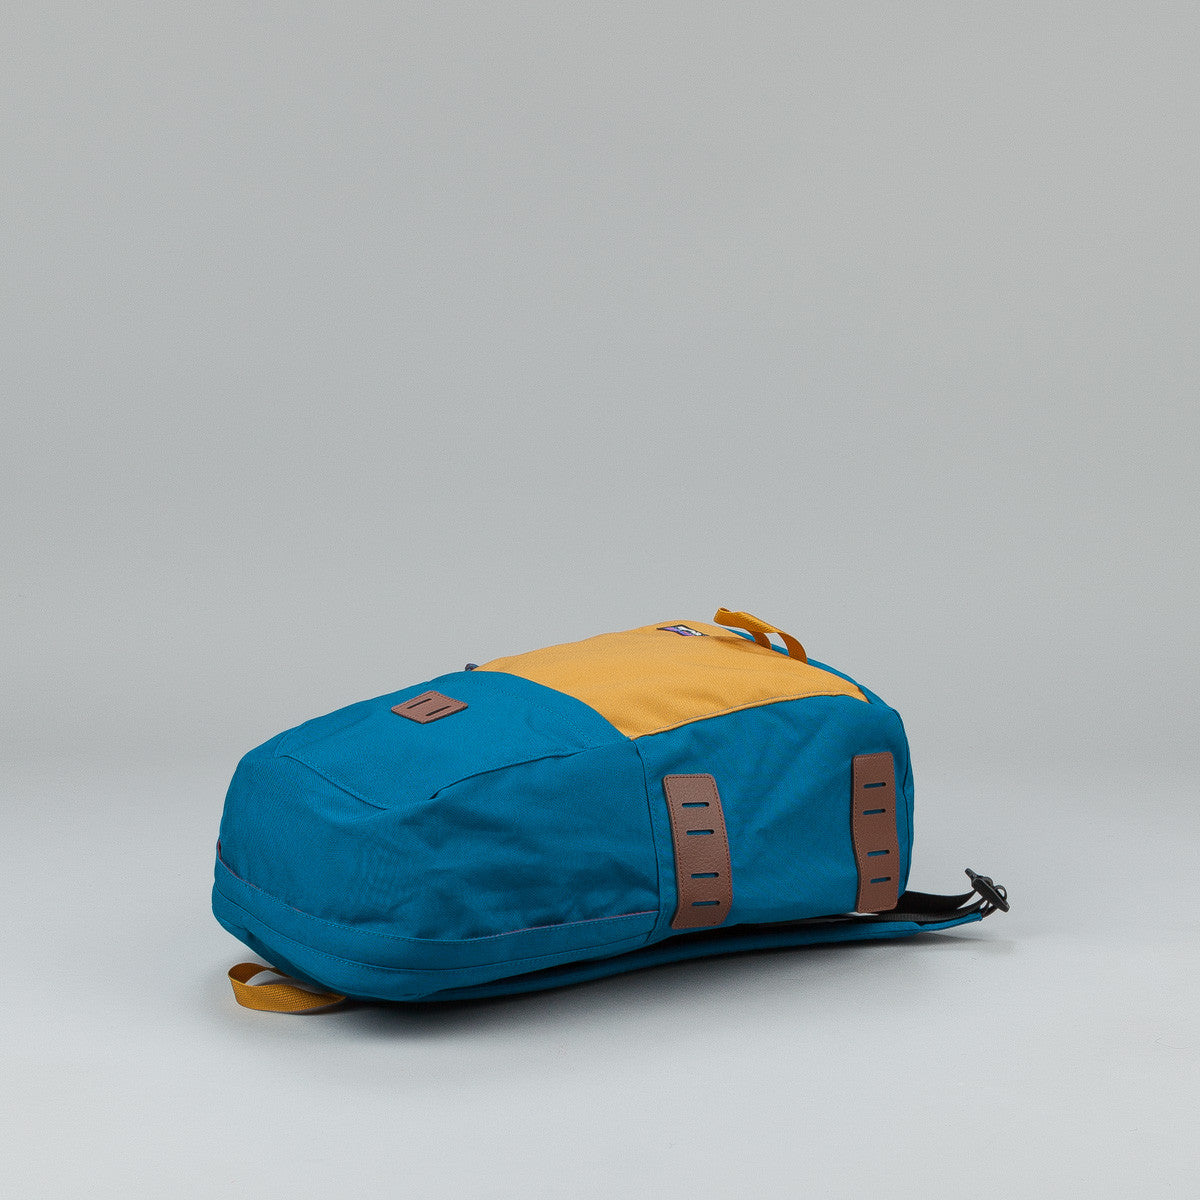 Patagonia Ironwood Backpack - Underwater Blue